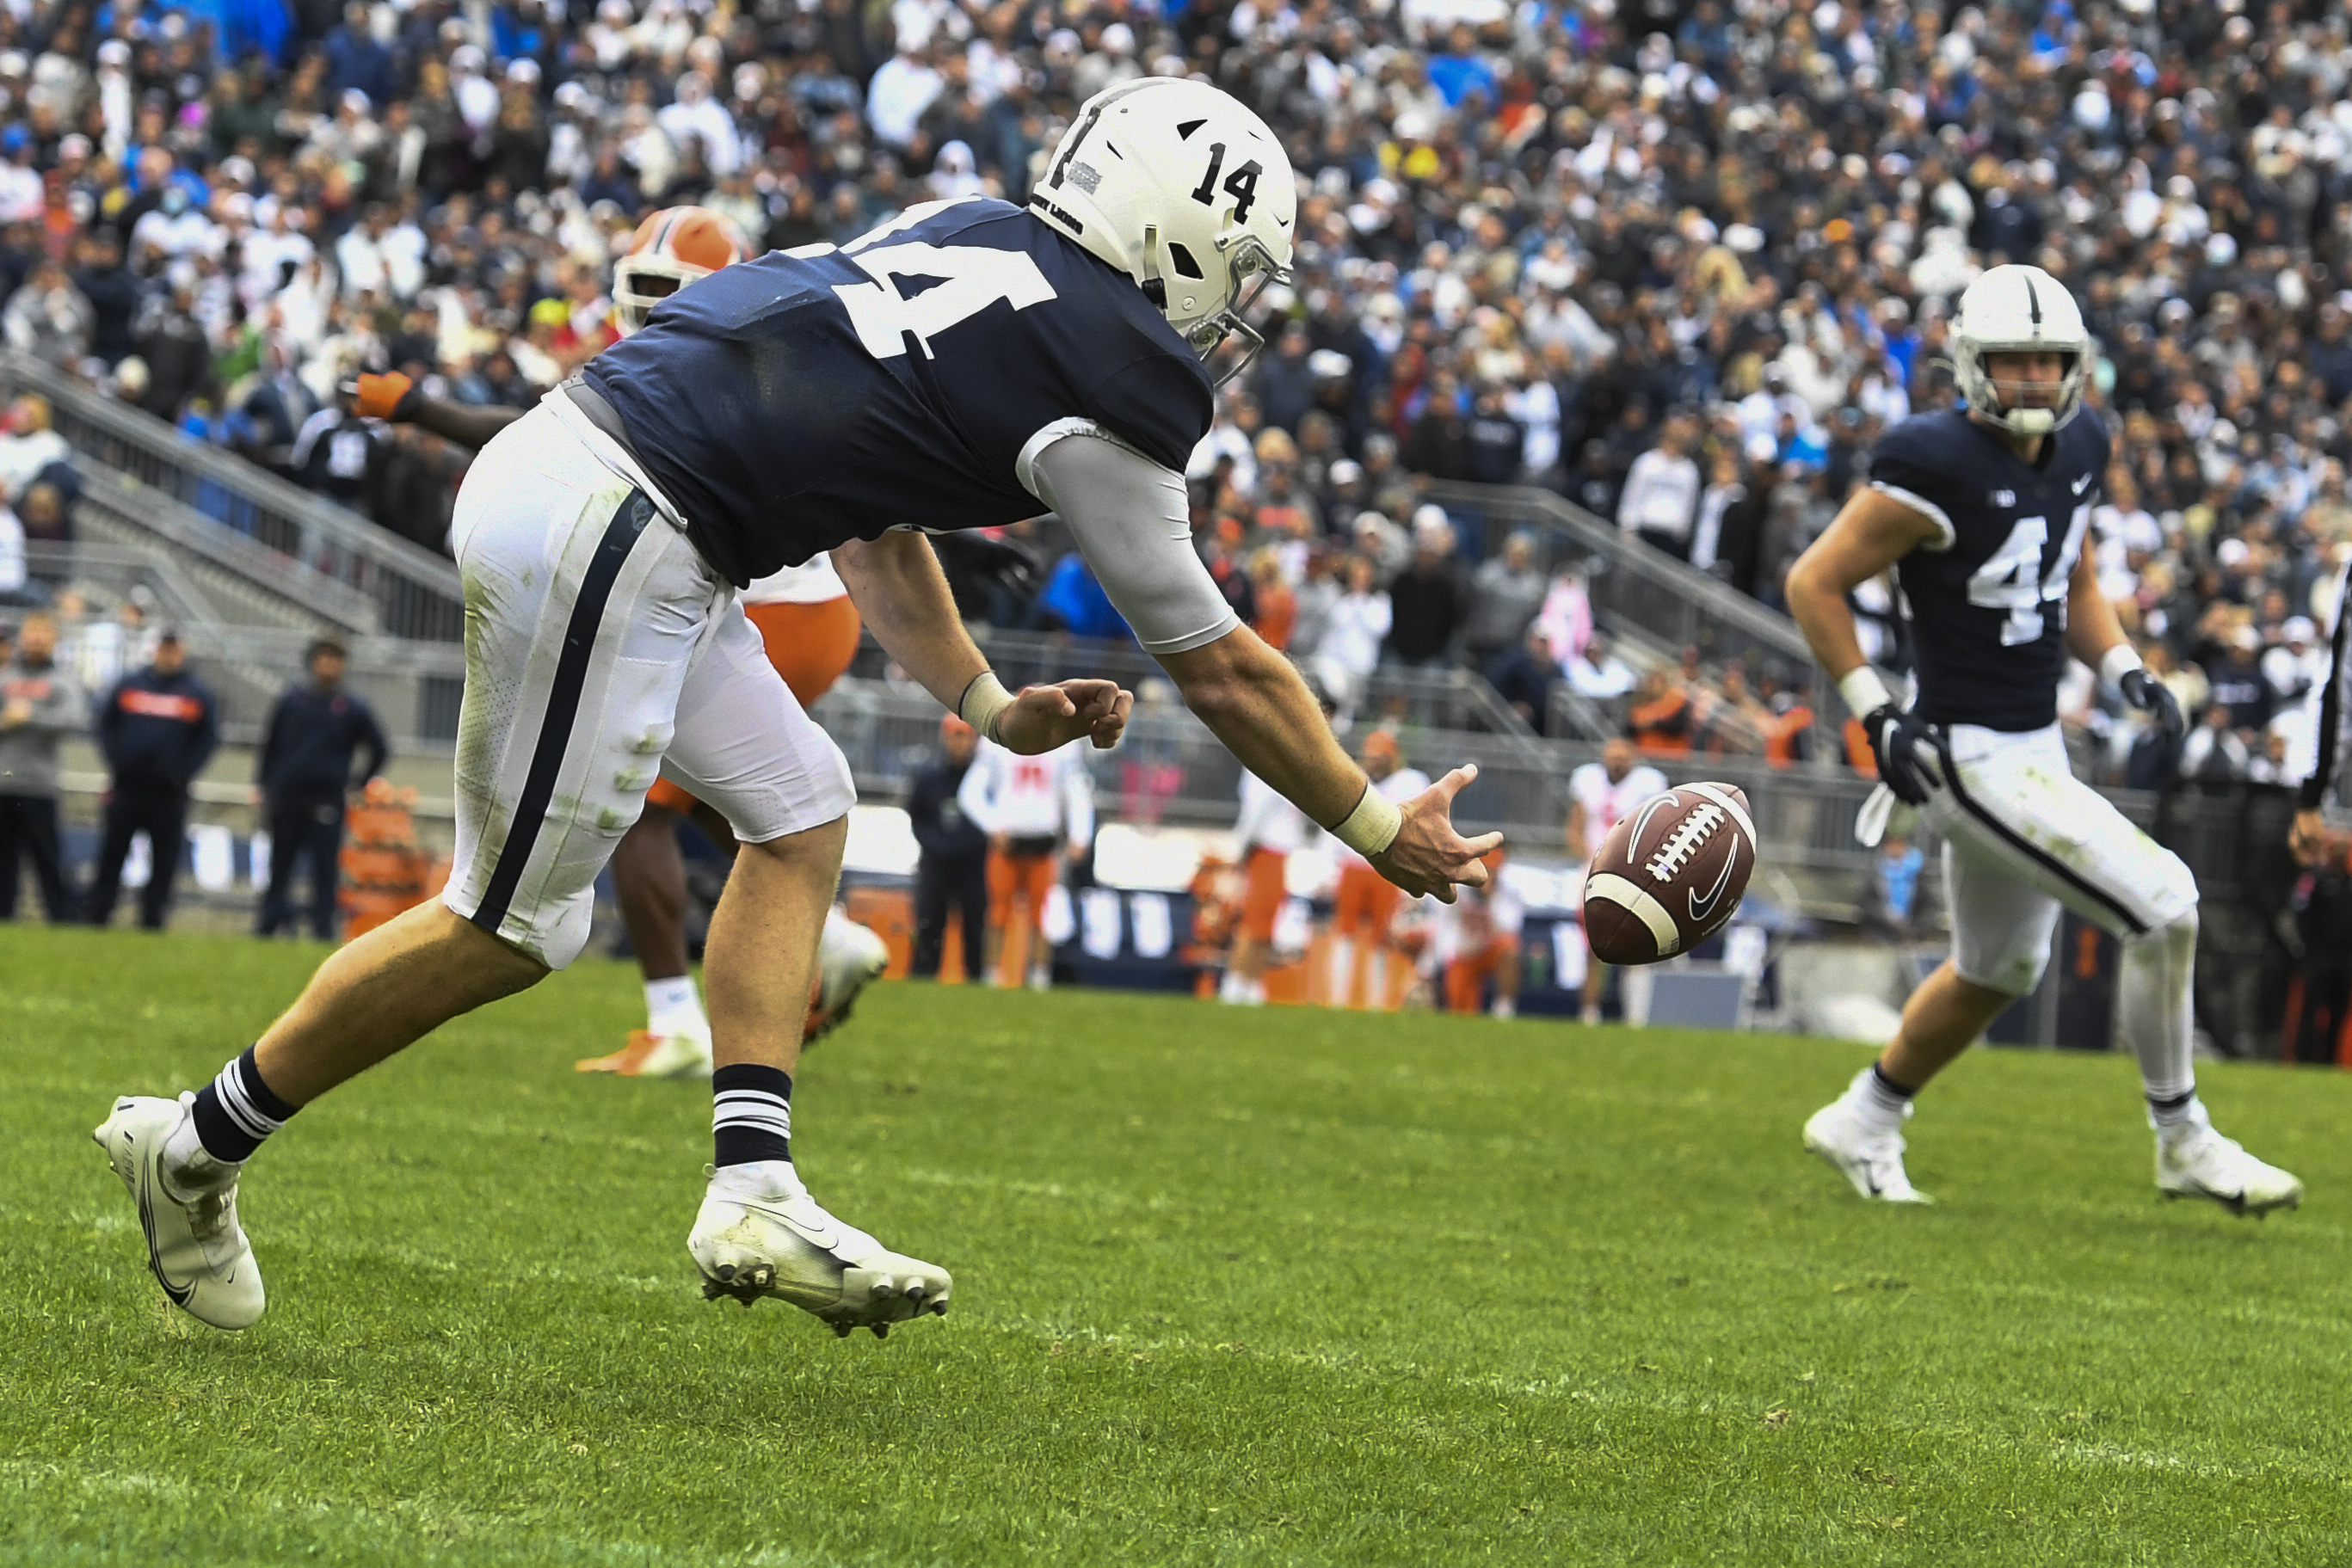 Penn State quarterback Sean Clifford (14) reaches for an incomplete pass from tight end Tyler Warren (44) in the third overtime of Saturday's loss to Illinois.